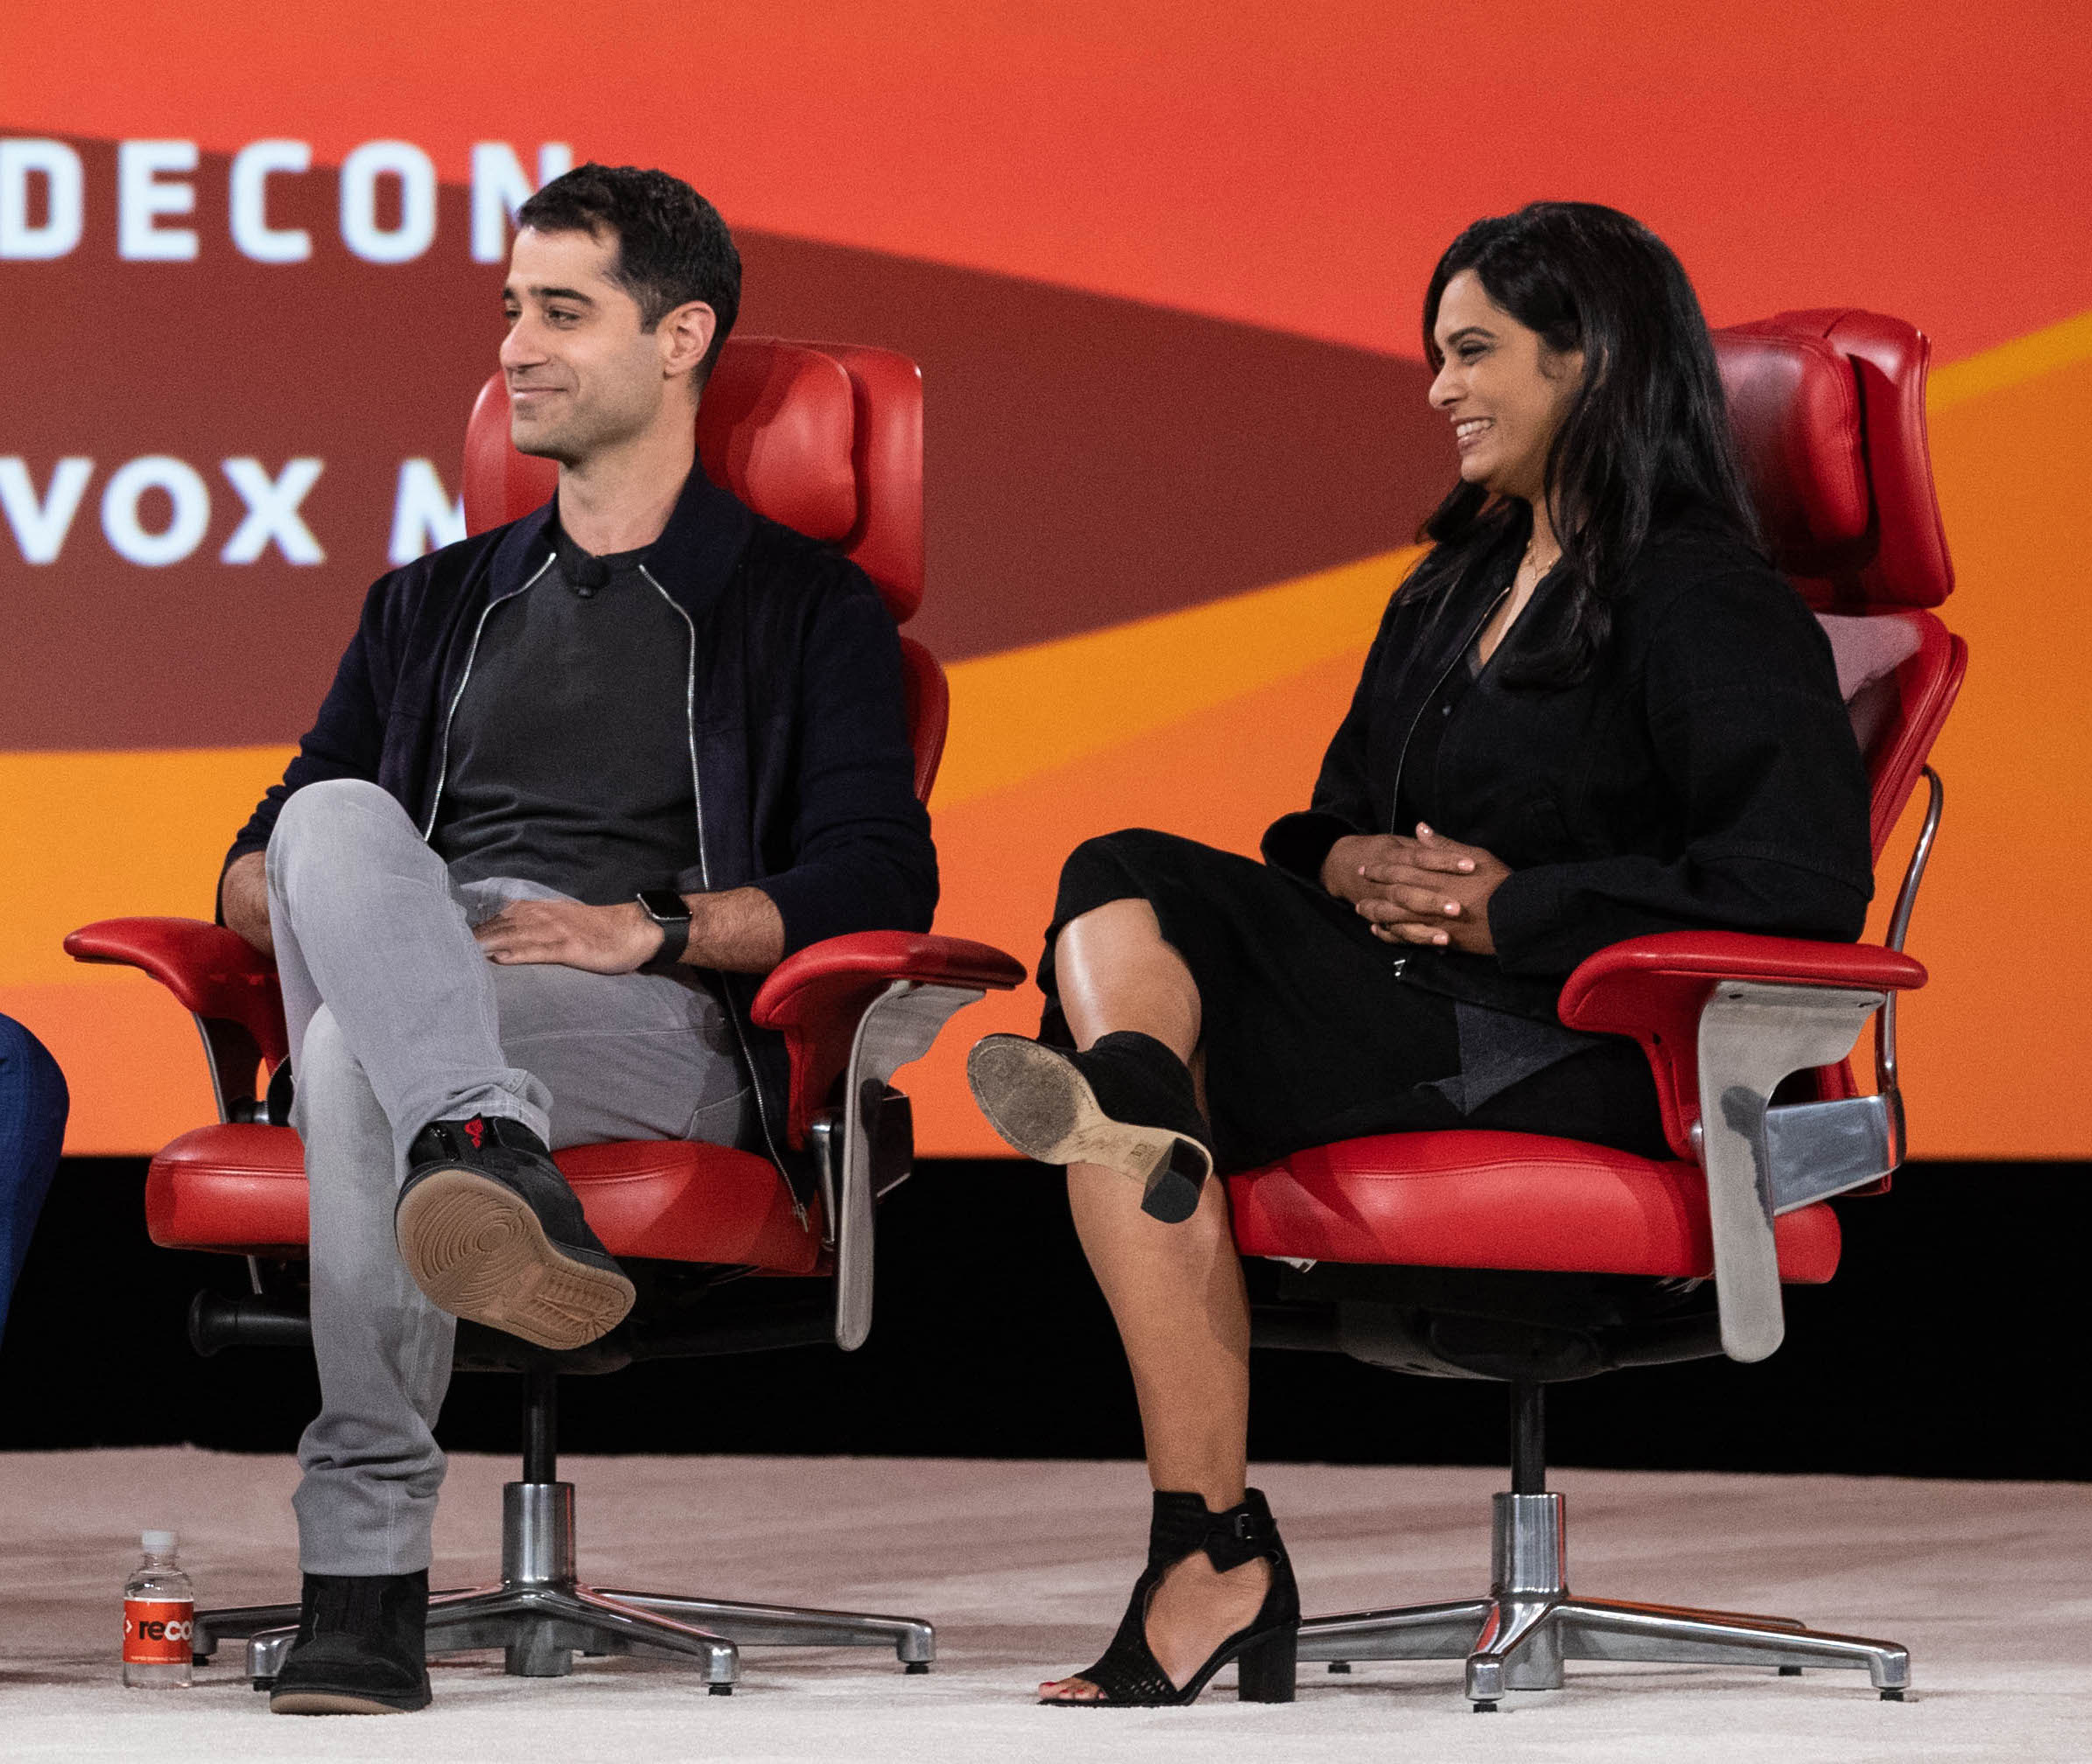 Twitter product lead Kayvon Beykpour and trust and safety lead Vijaya Gadde.